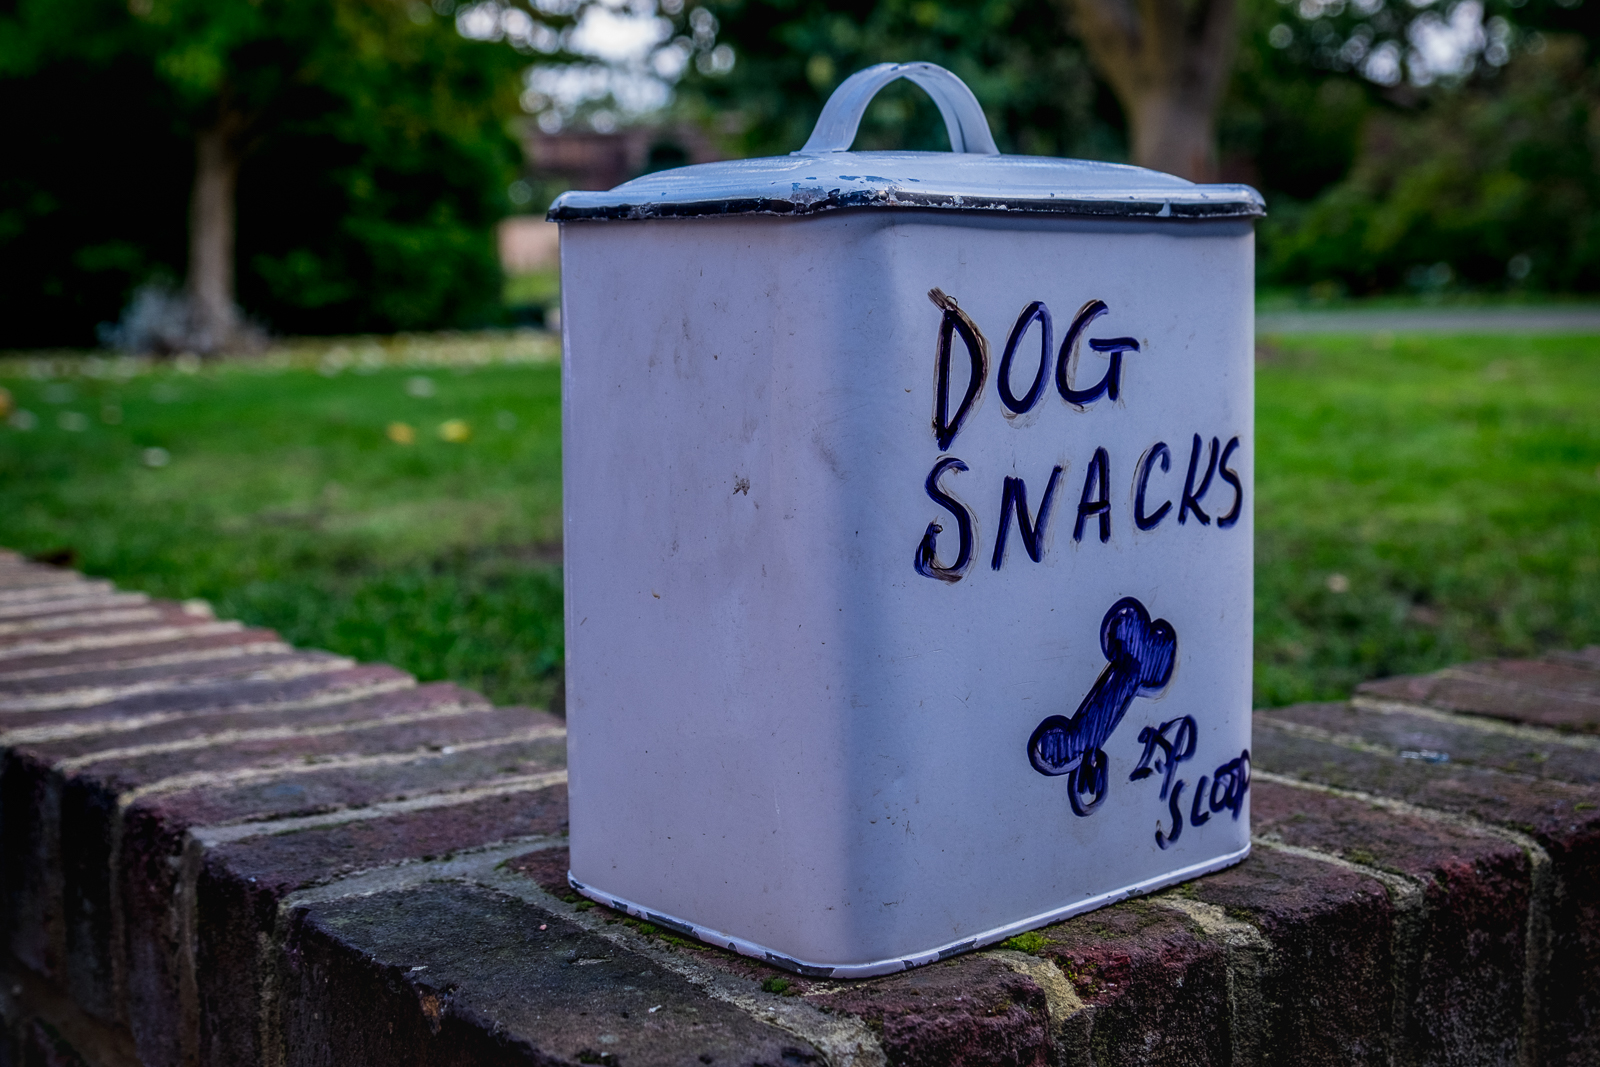 20161012_Hillingdon_Eastcote-House-Gardens_Dog-snacks-at-the-cafe